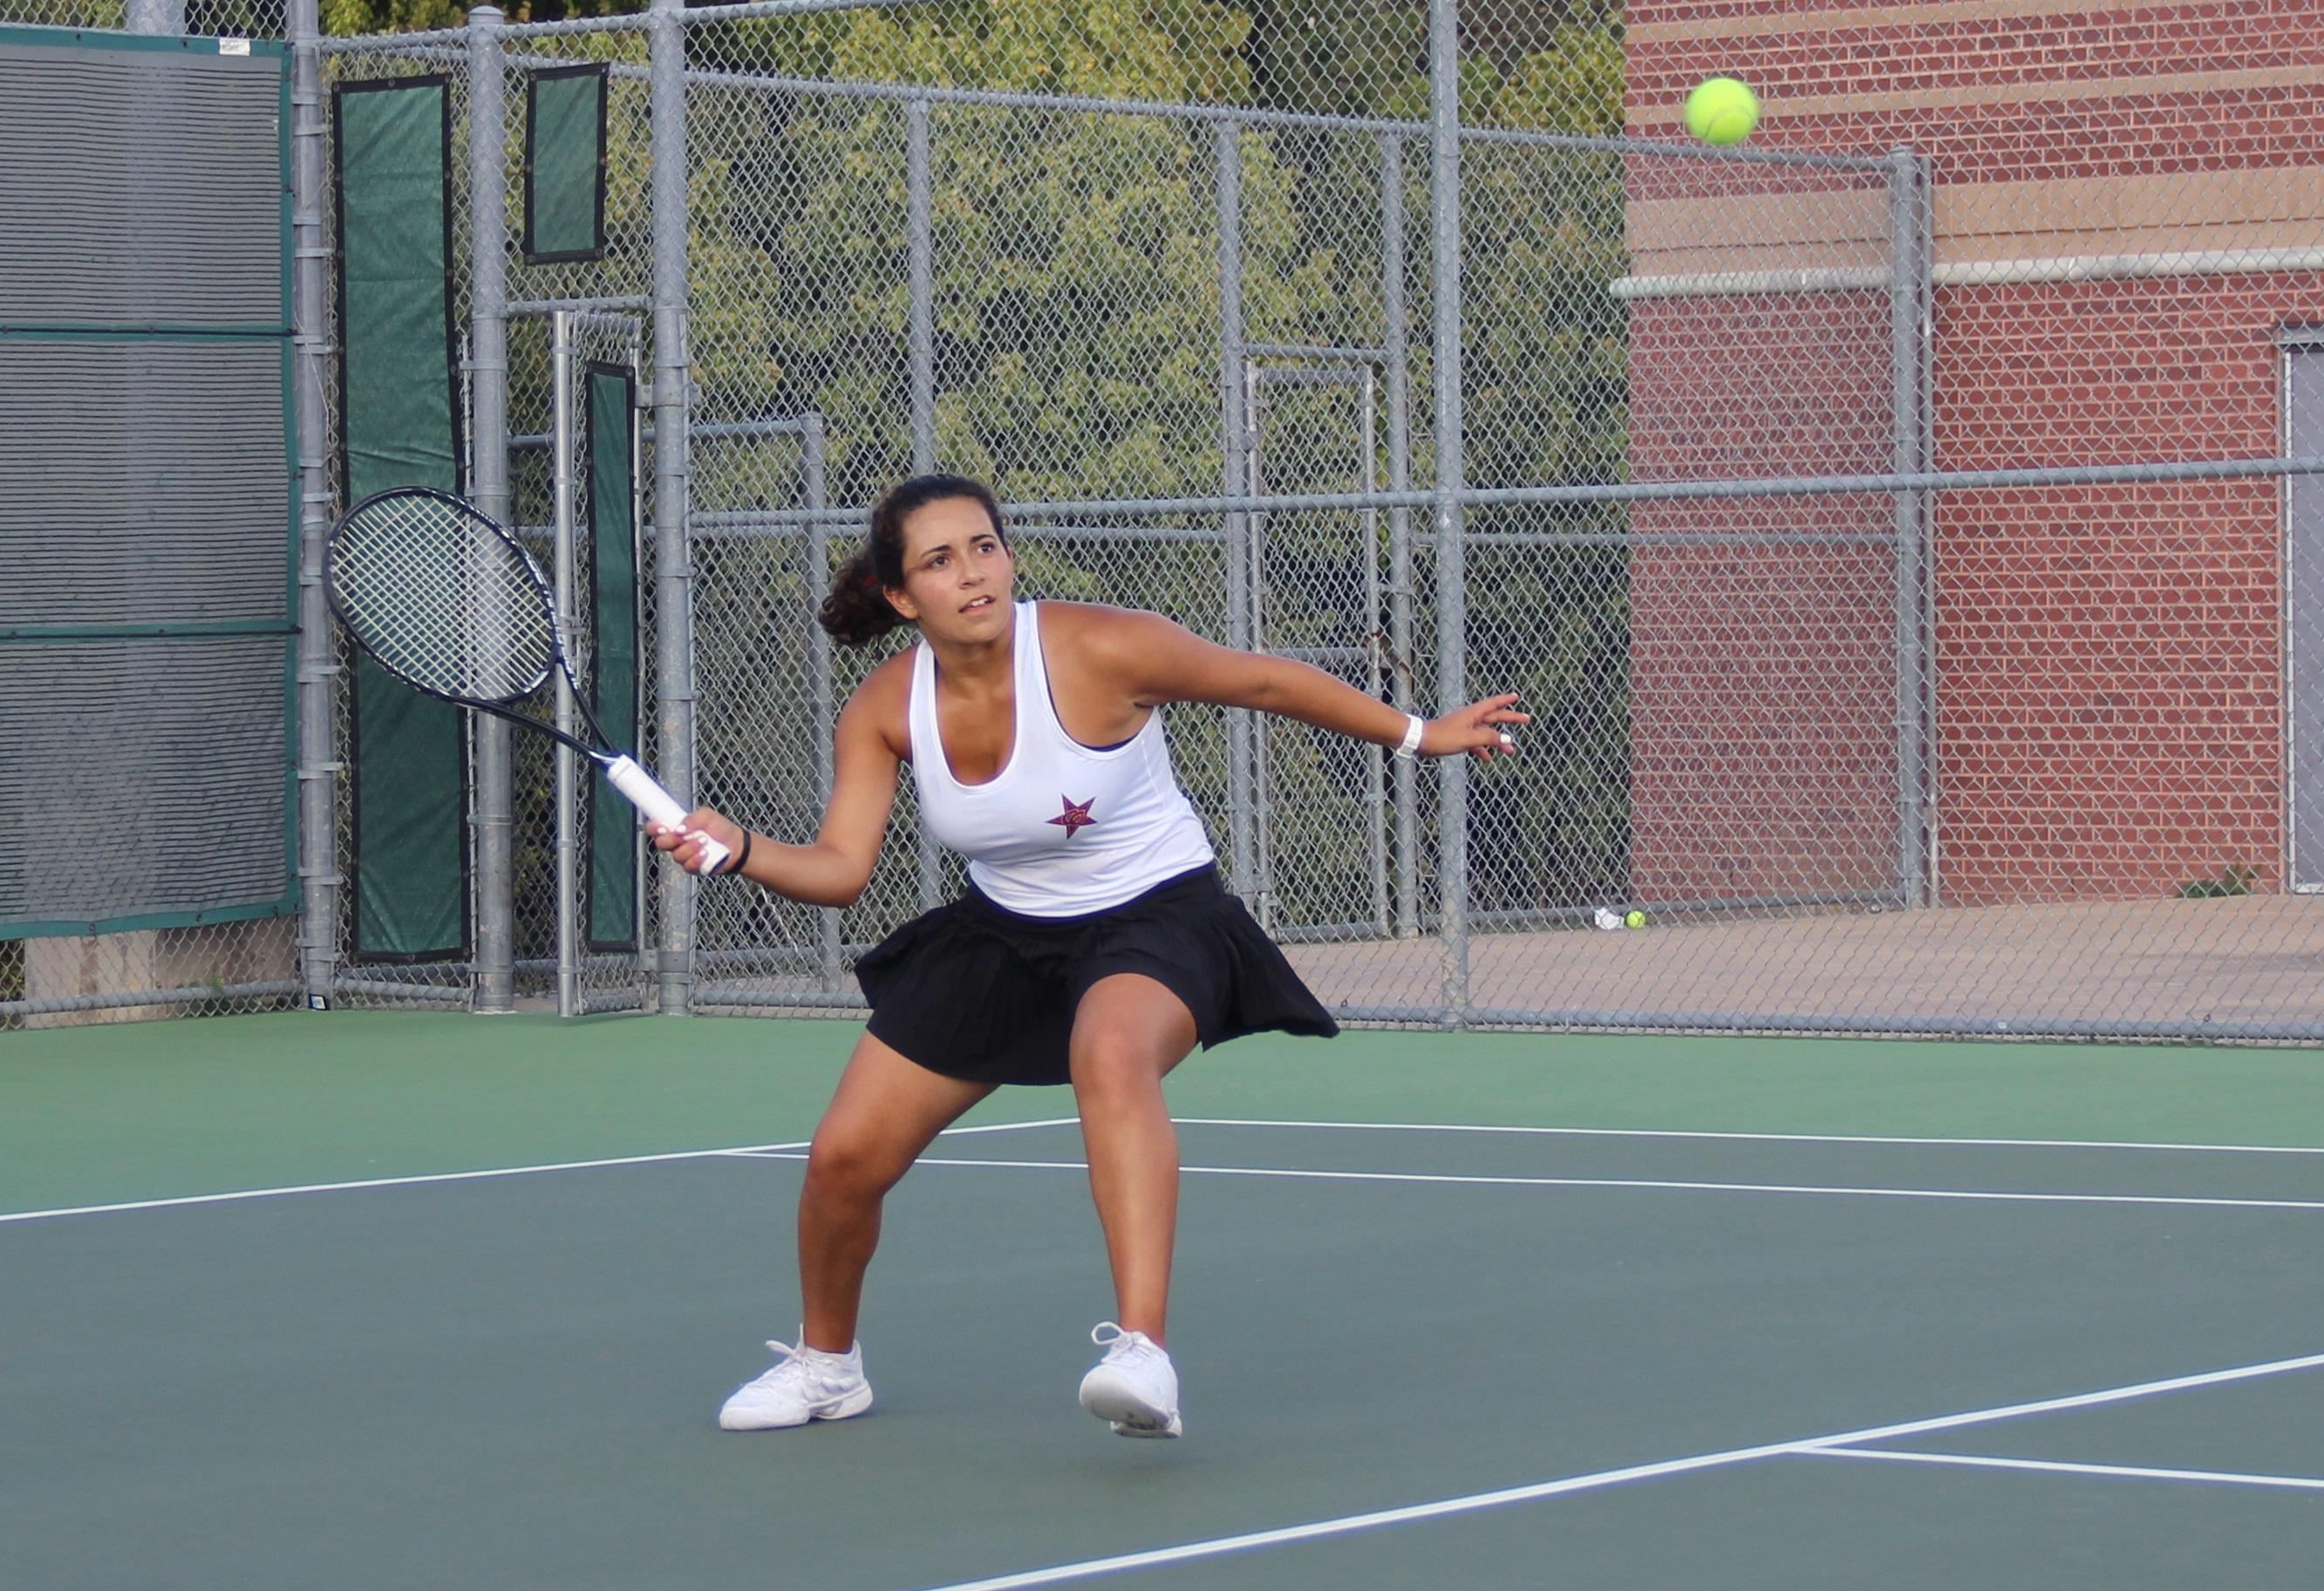 Senior tennis player Laila Kamel strikes the ball during her 4-6, 6-0, 10-7 doubles victory in Coppell's win over Rowlett. Although Kamel and her partner Akshaya Kannan dropped the first set, they battled back to help the team sweep Roulette.